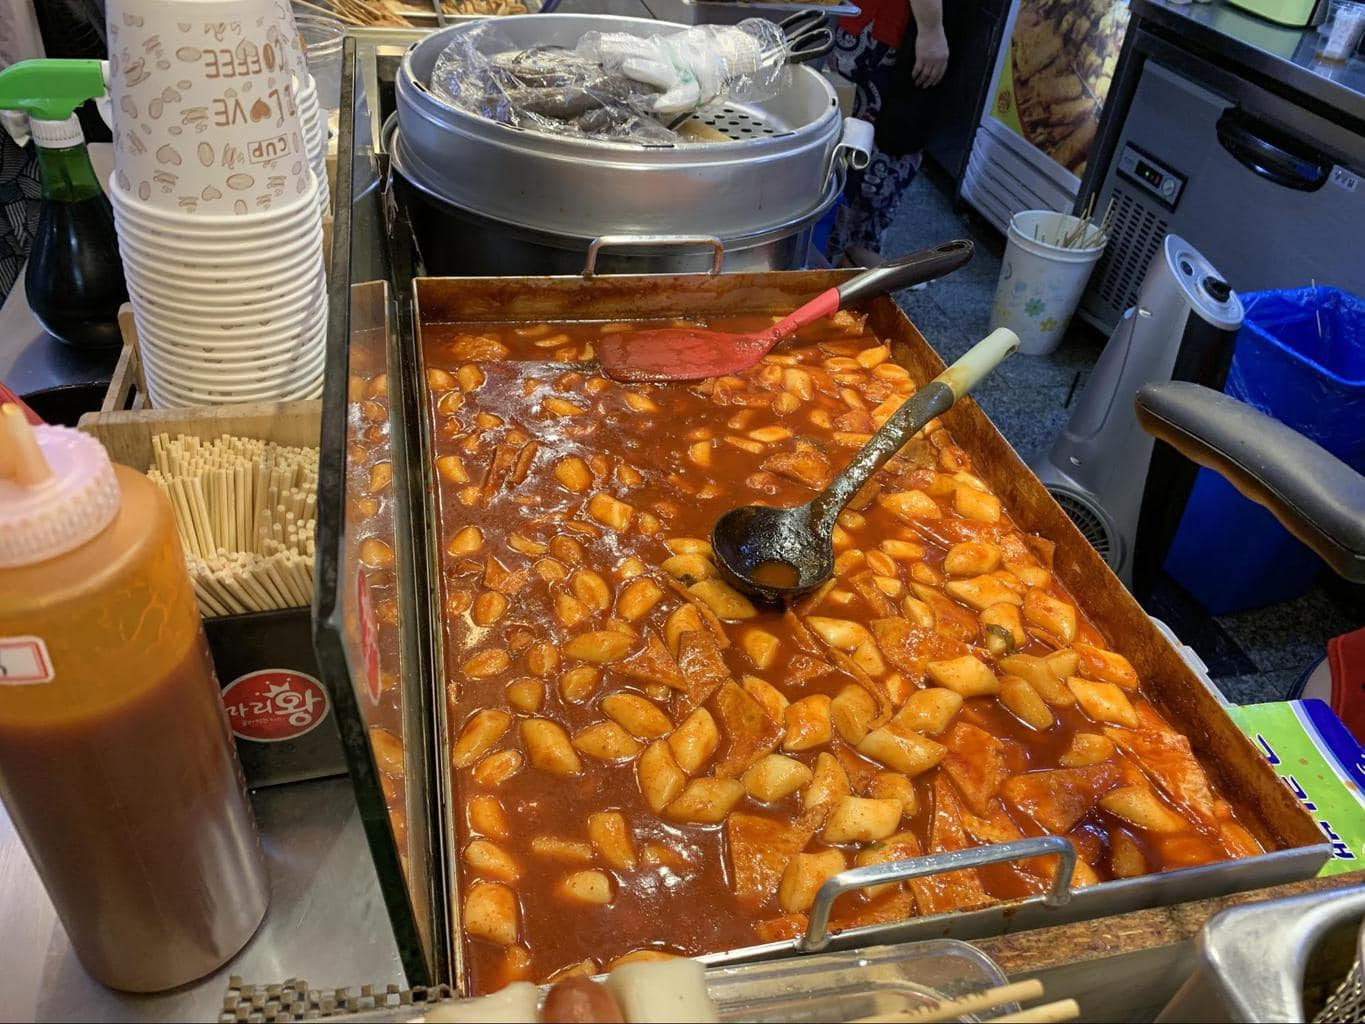 Tteokbokki or spicy rice cakes